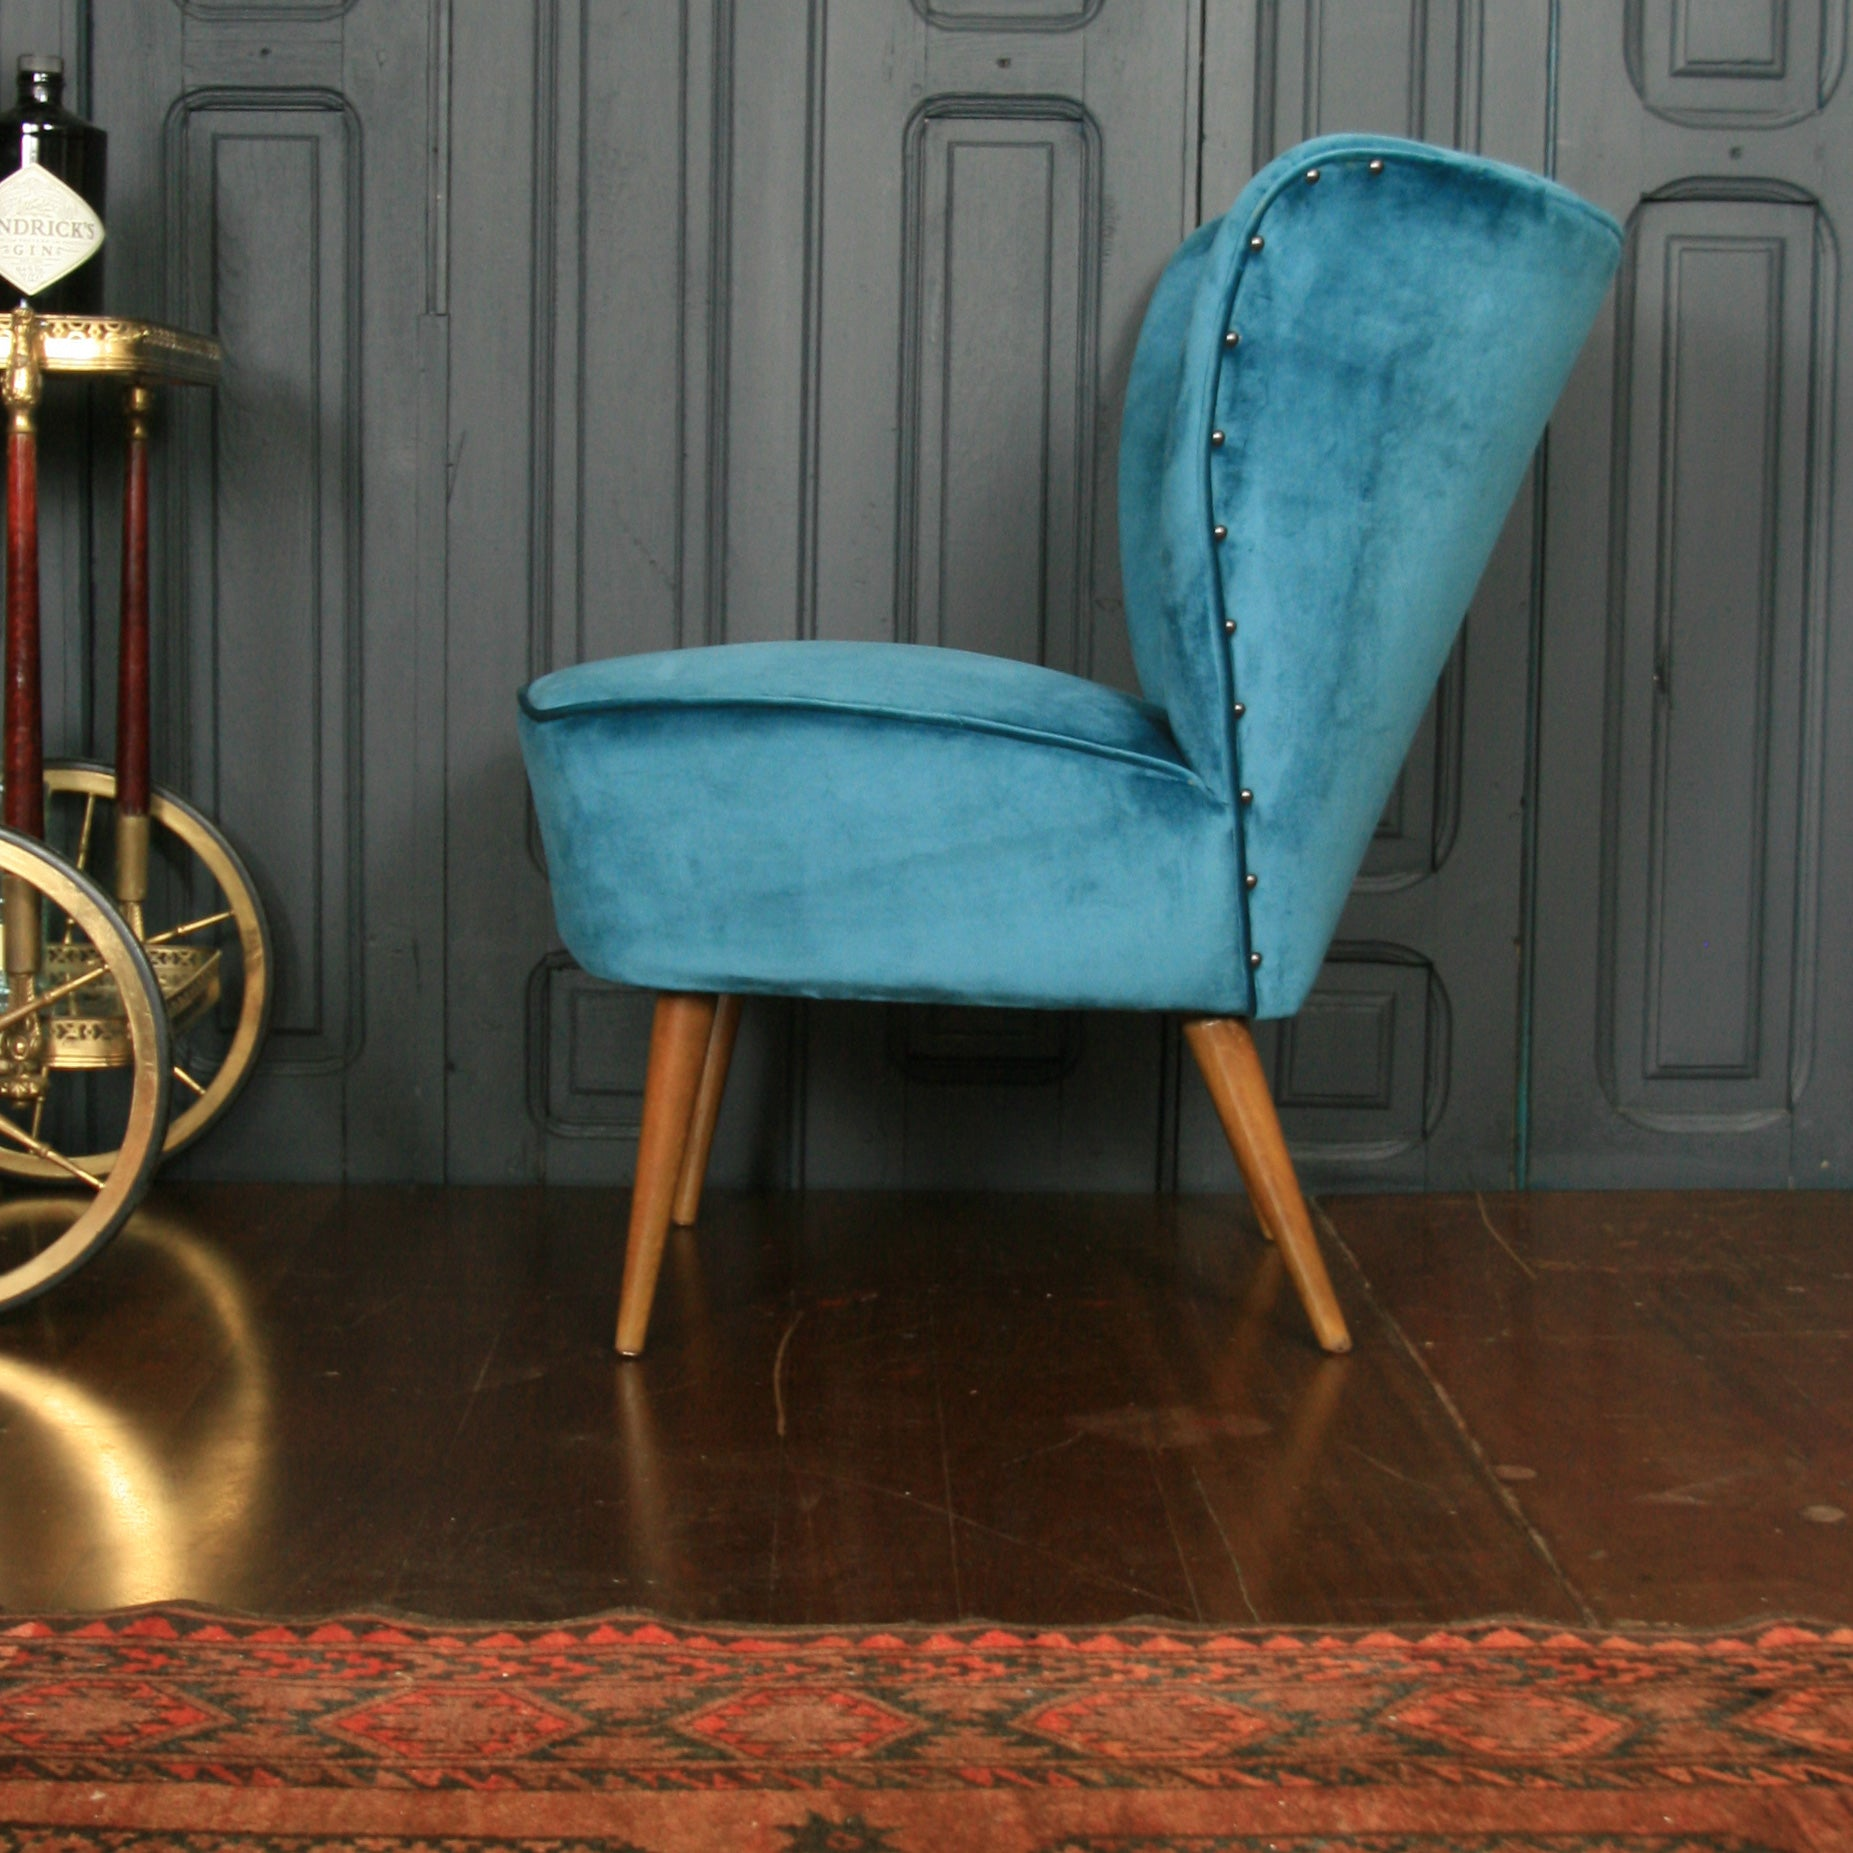 Pleasing Mid Century Bartholomew Cocktail Chair Teal Velvet Download Free Architecture Designs Scobabritishbridgeorg